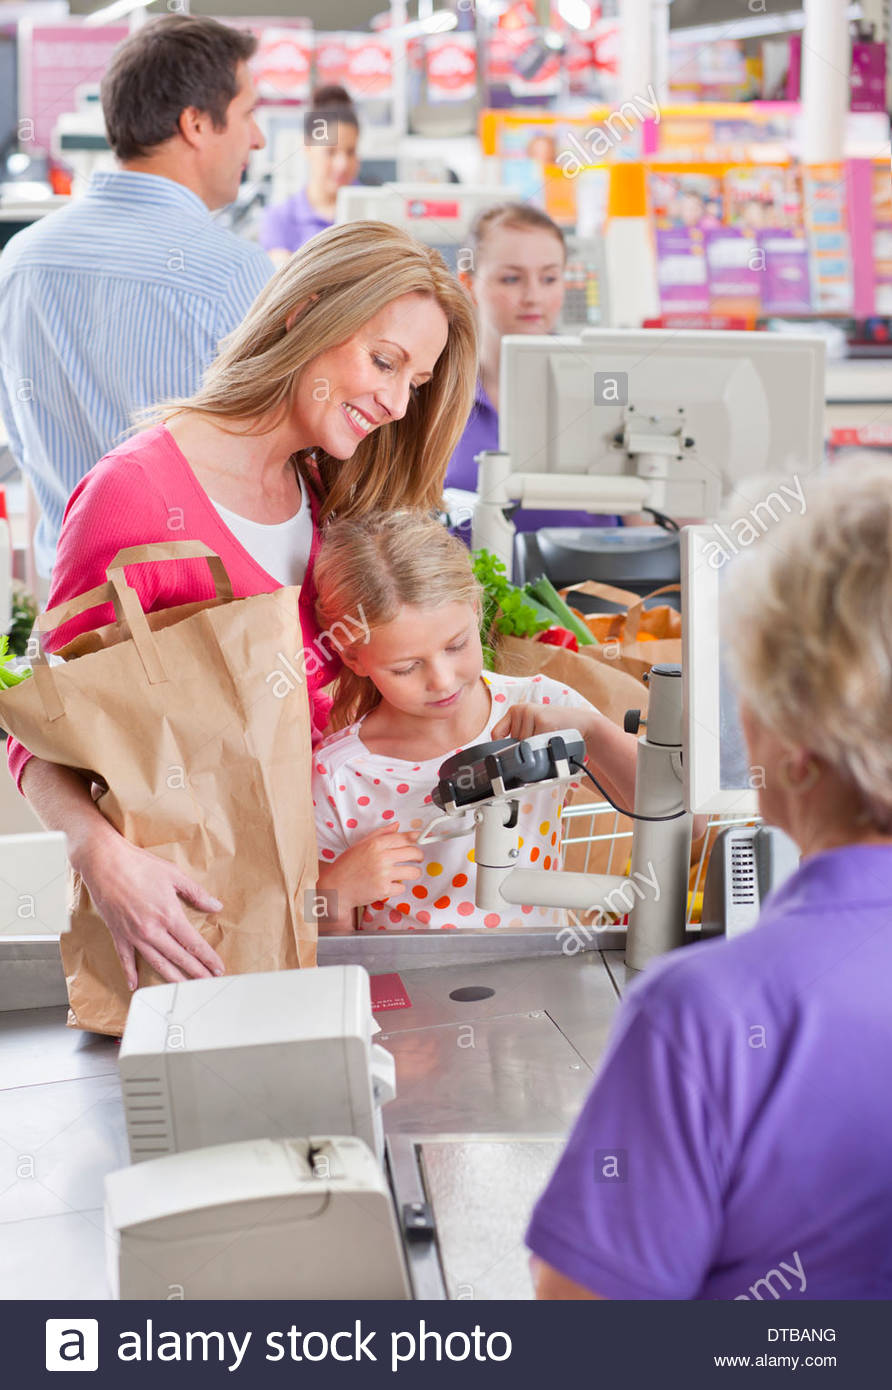 Mother And Daughter Paying For Shopping At Supermarket Checkout - Stock Image